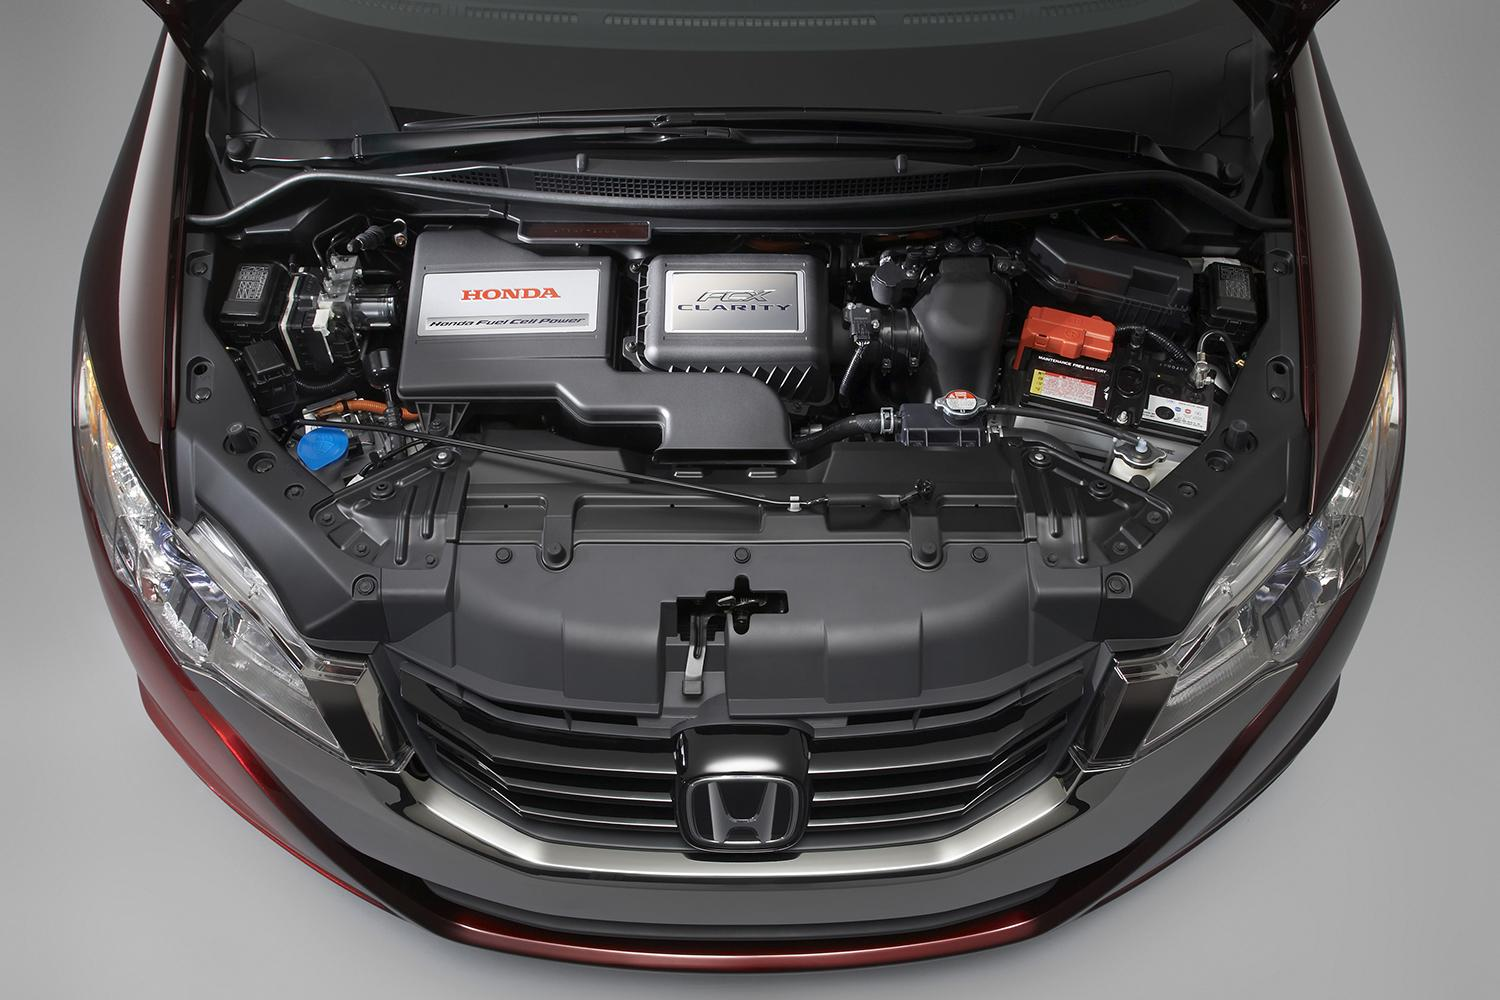 accord hybrid engine diagram gm and honda may jointly manufacture fuel cells honda hybrid engine diagram